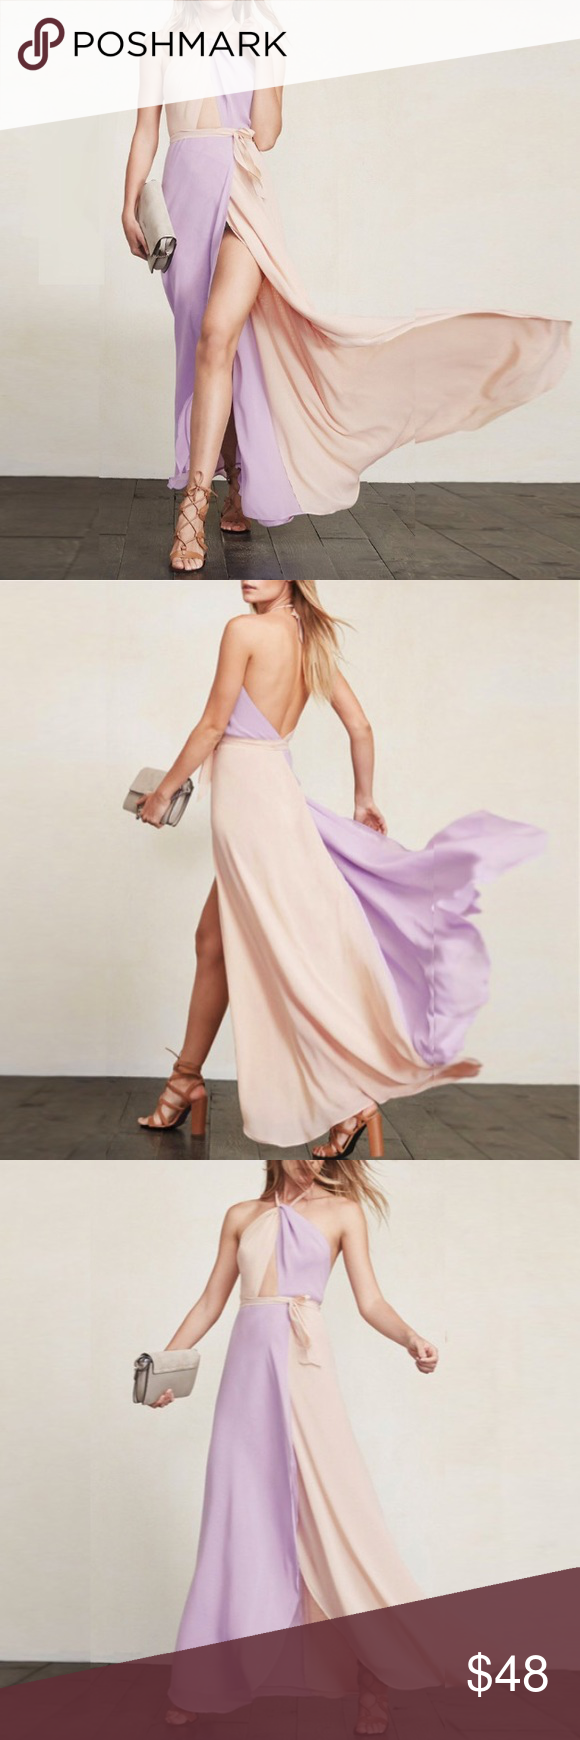 Apricot purple maxi dress estella halter new boutique maxi